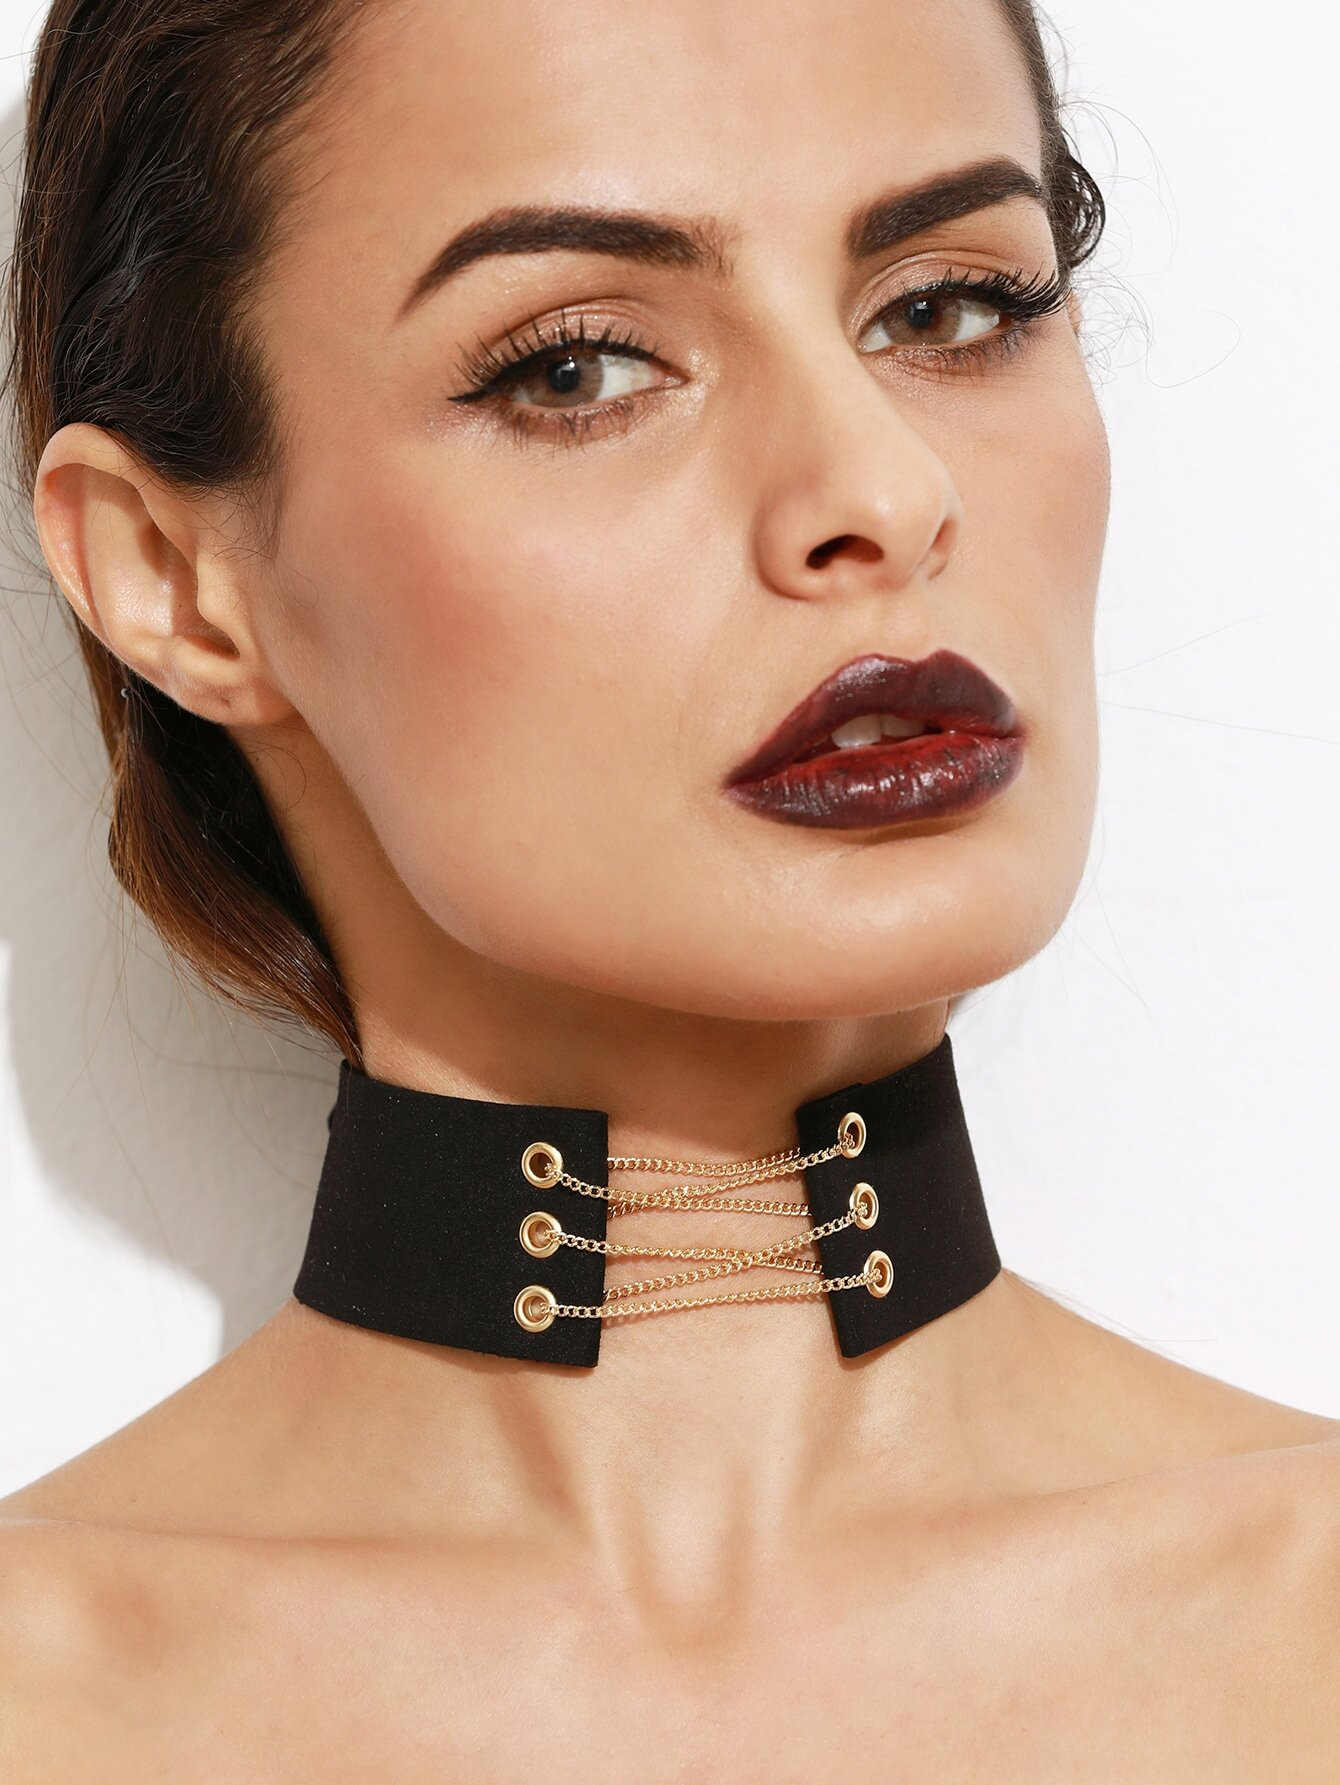 Metal Chain Tie Back Wide Choker Necklace fashion white hollow out lace metal chain choker necklace